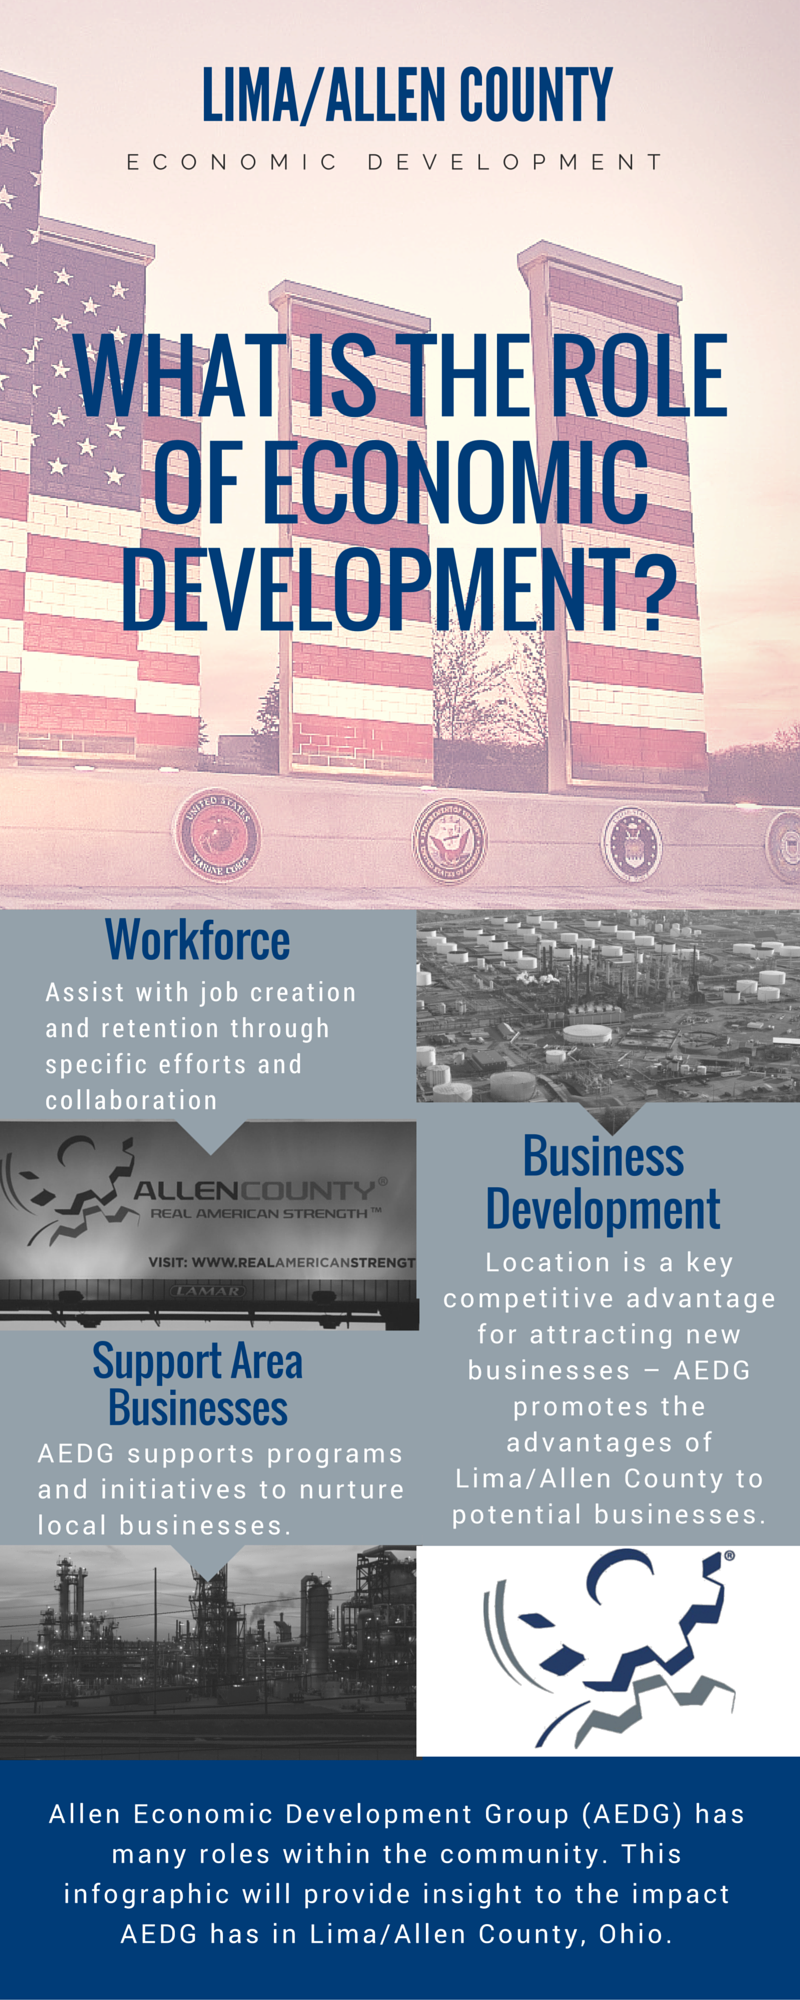 Allen County Ohio is supported by the Allen Economic Development Group